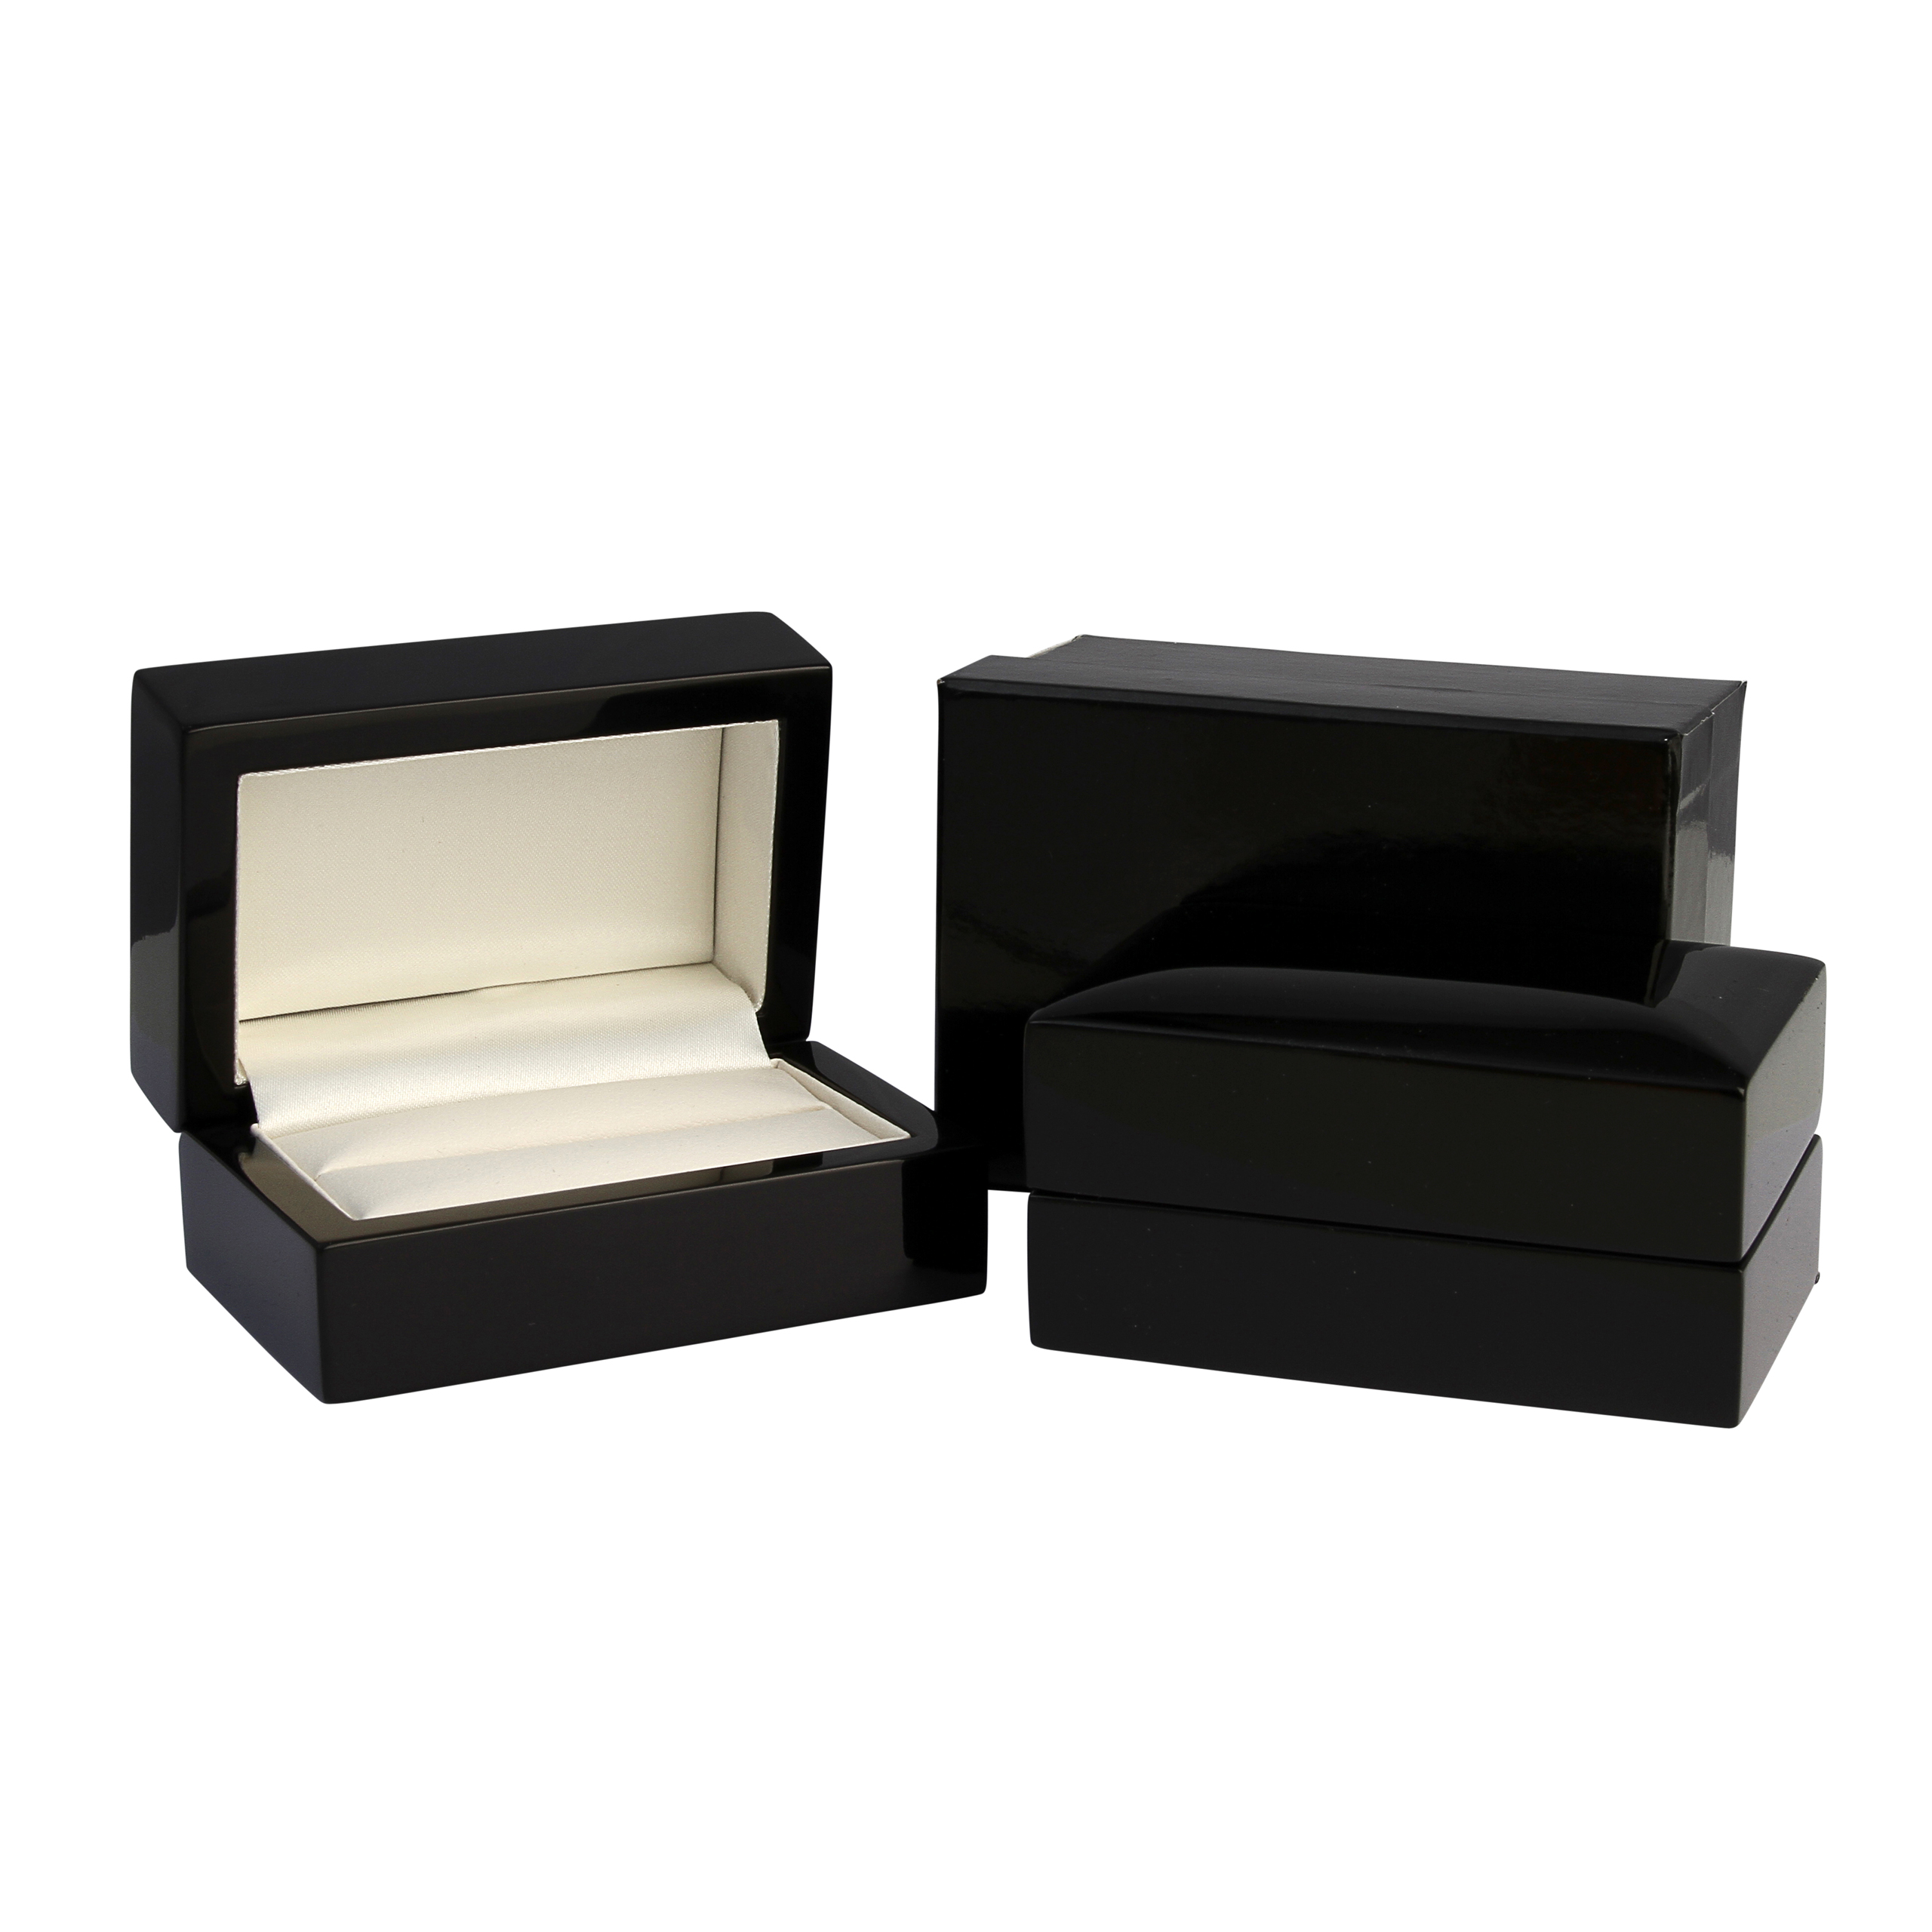 Double Black Wooden Ring Box ring boxes upgrades at Elma